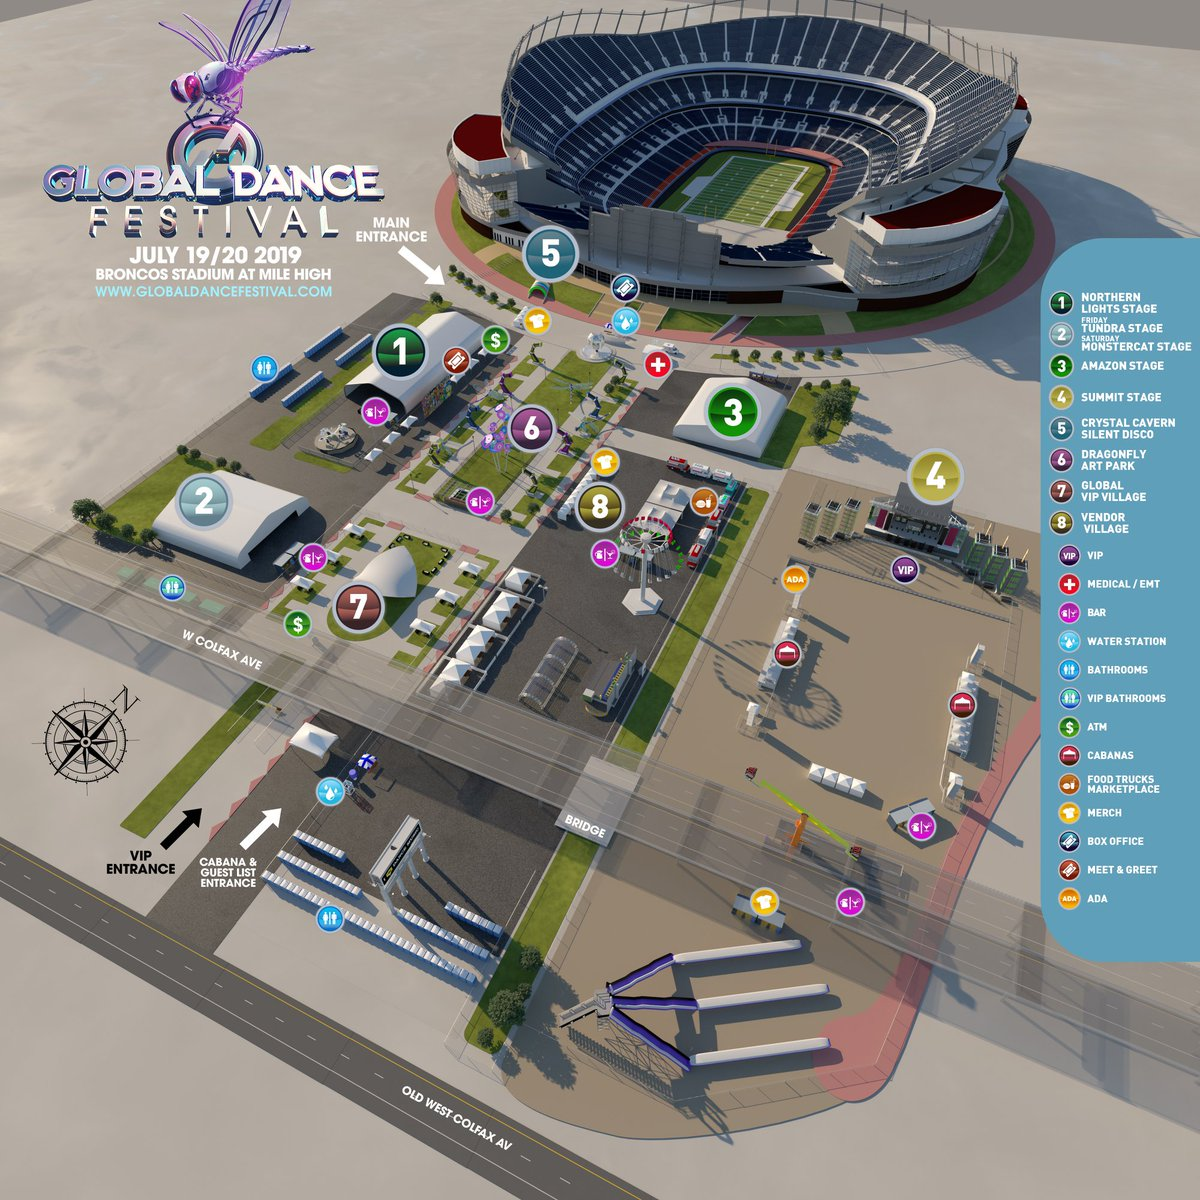 Global Dance Festival venue map